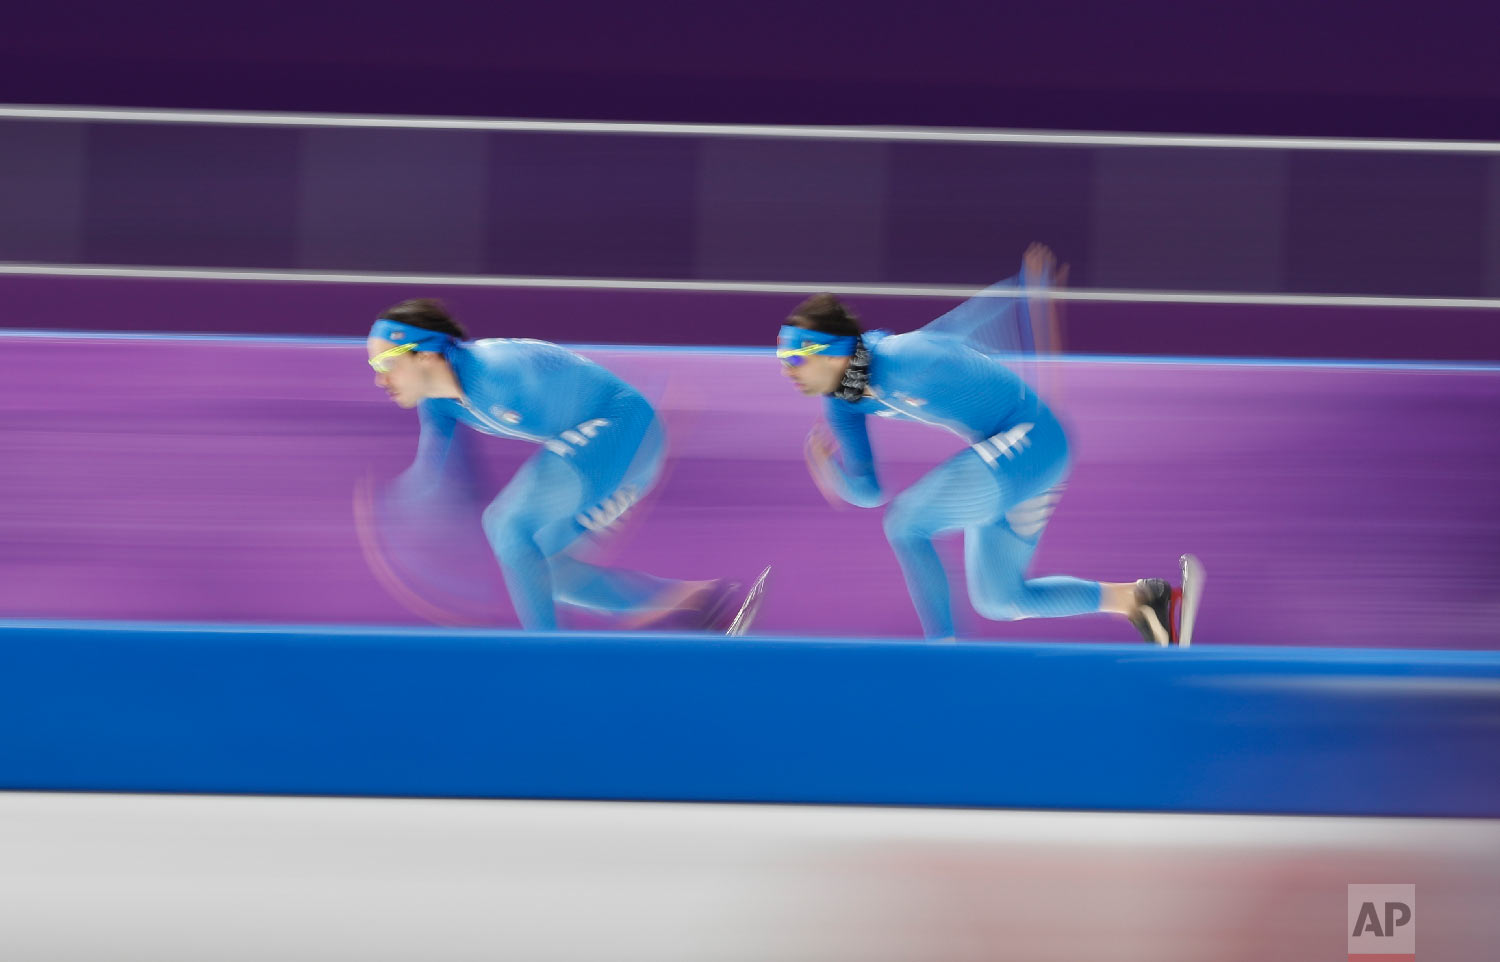 Two skaters from Italy strain during the official training session for the men's 5,000 meters race at the Gangneung Oval at the 2018 Winter Olympics in Gangneung, South Korea, Saturday, Feb. 10, 2018. (AP Photo/Petr David Josek)